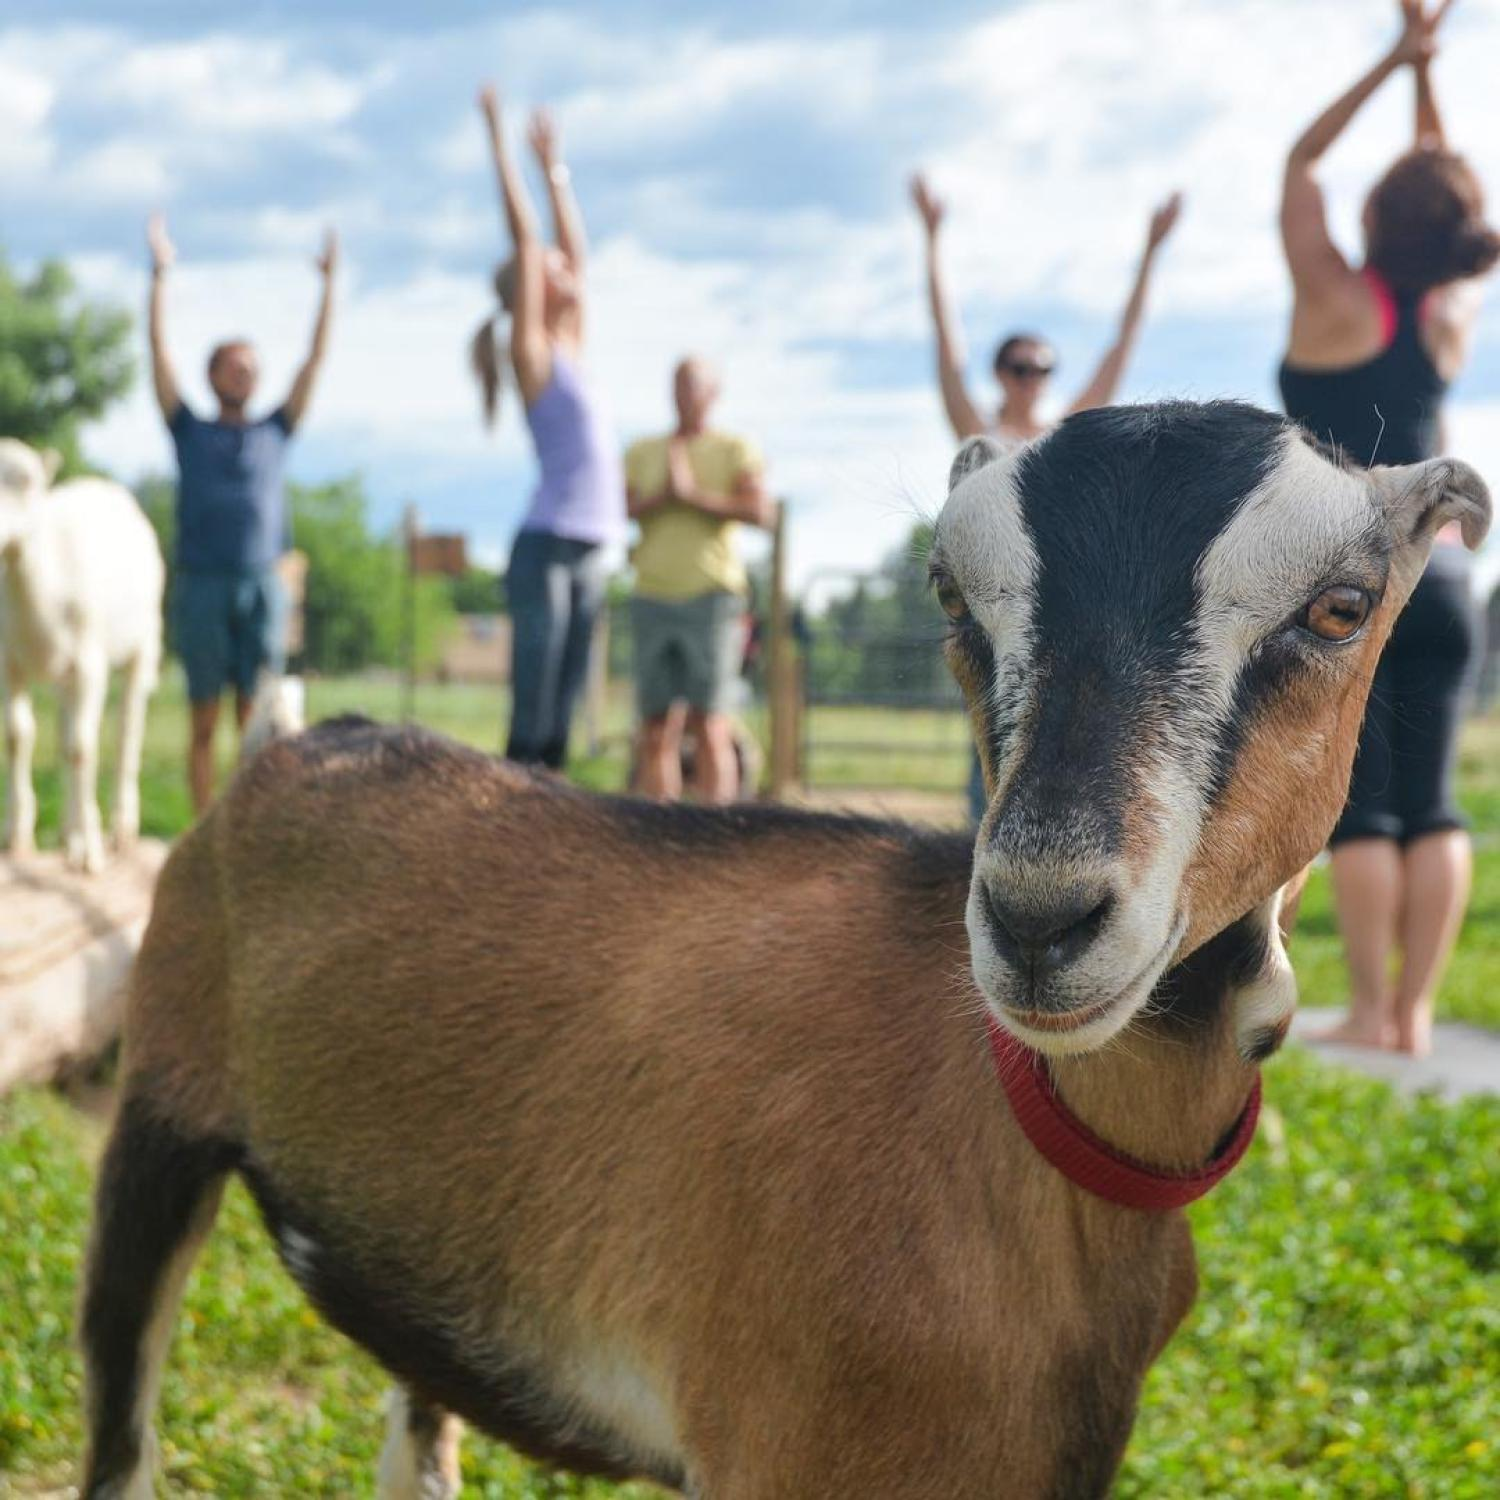 Goat yoga, photo from The Rec Instagram